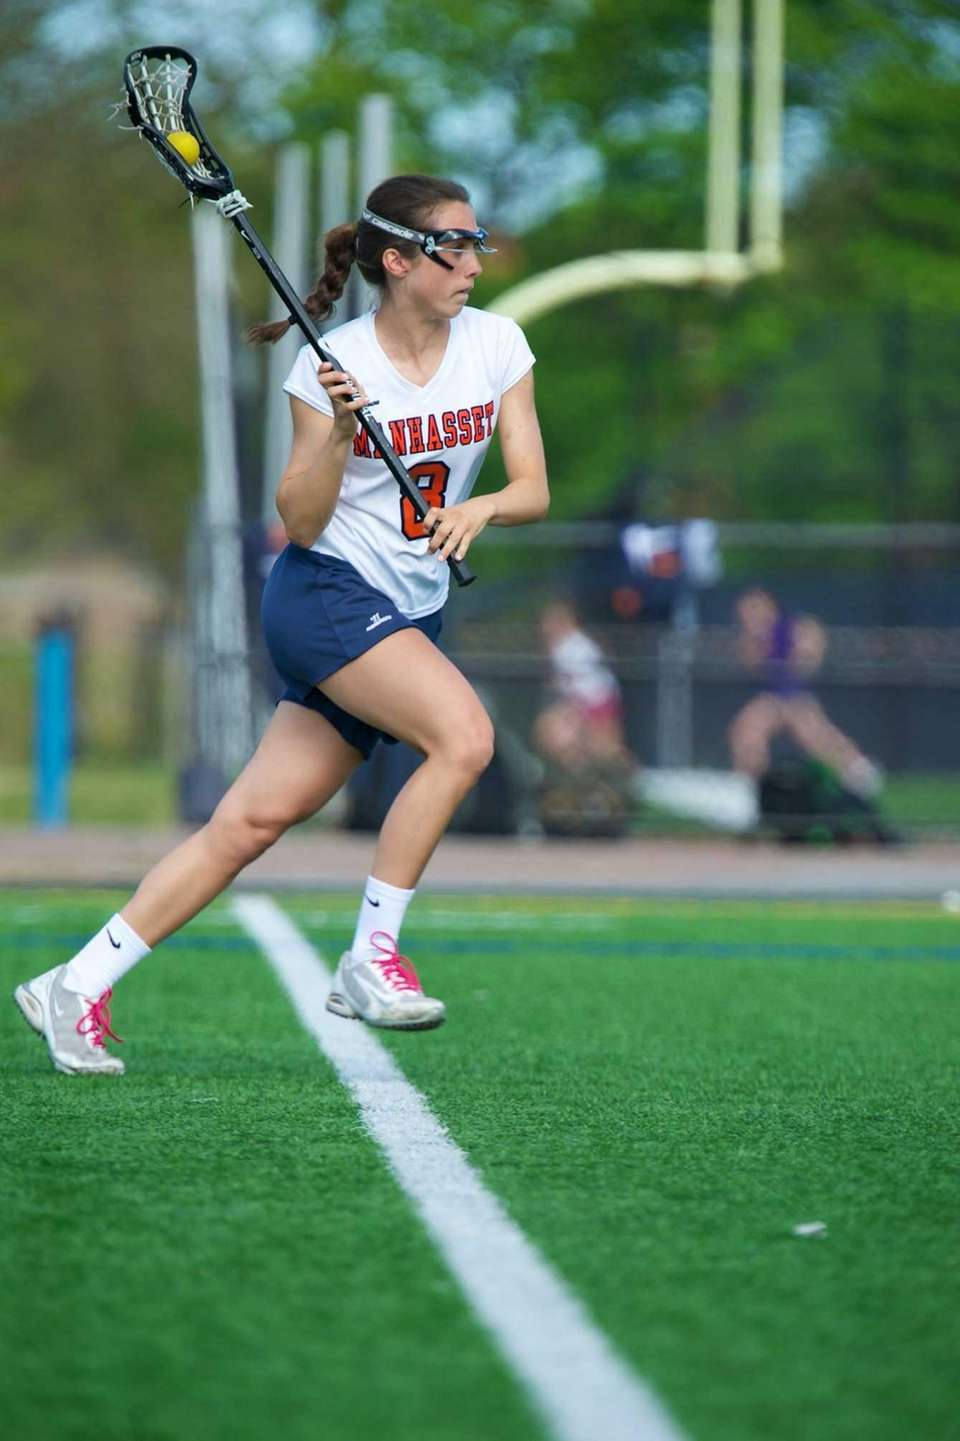 Manhasset junior Julia Glynn (8) carries the ball